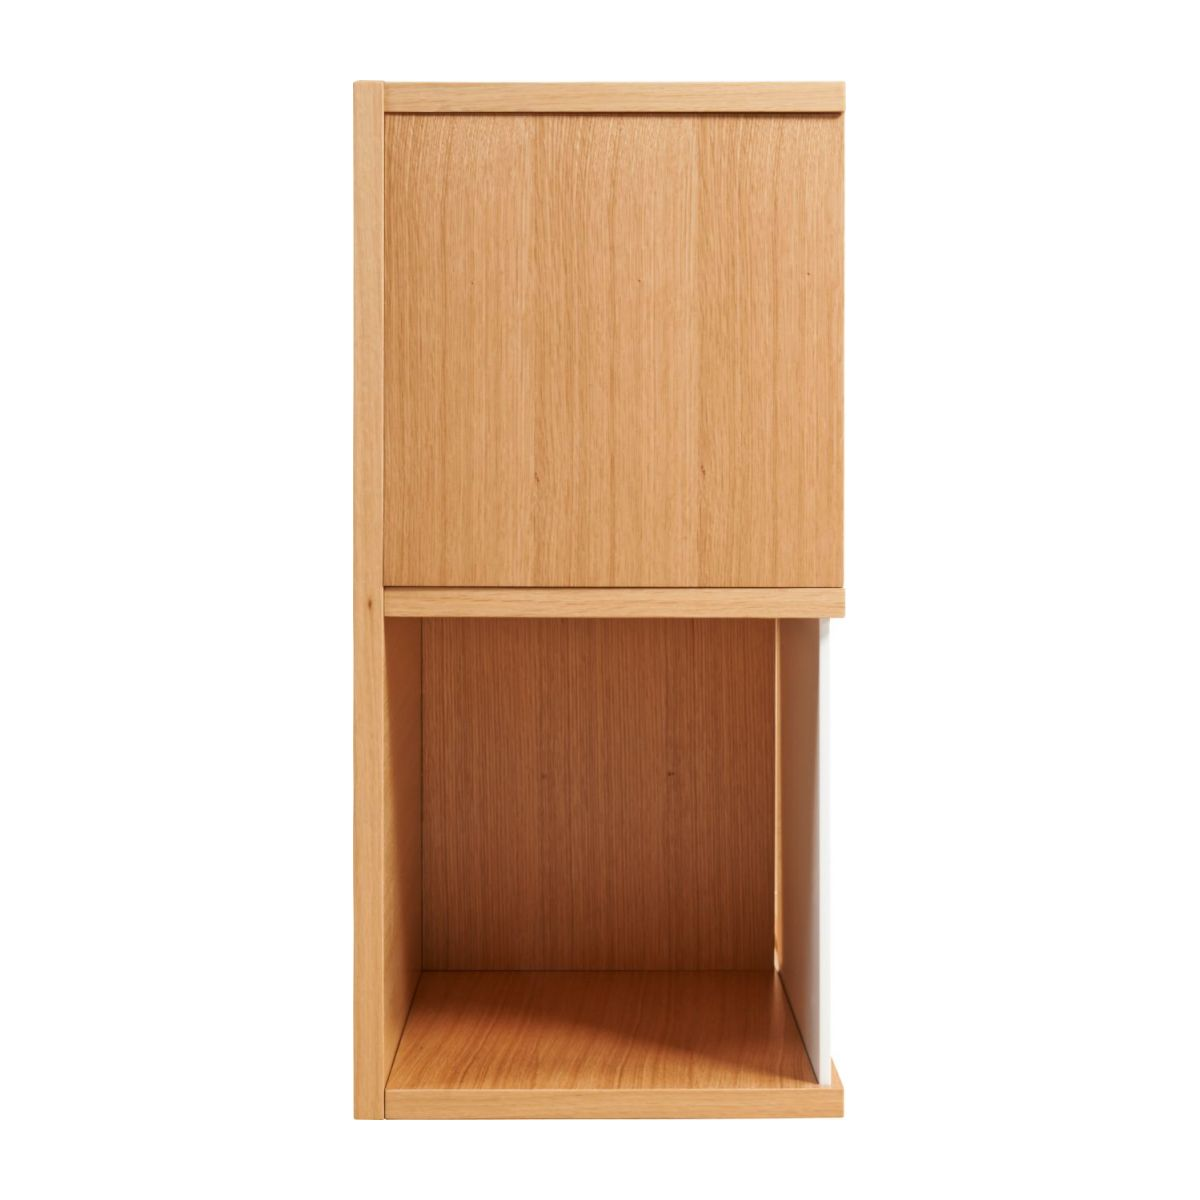 Low bookcase, oak and white n°5